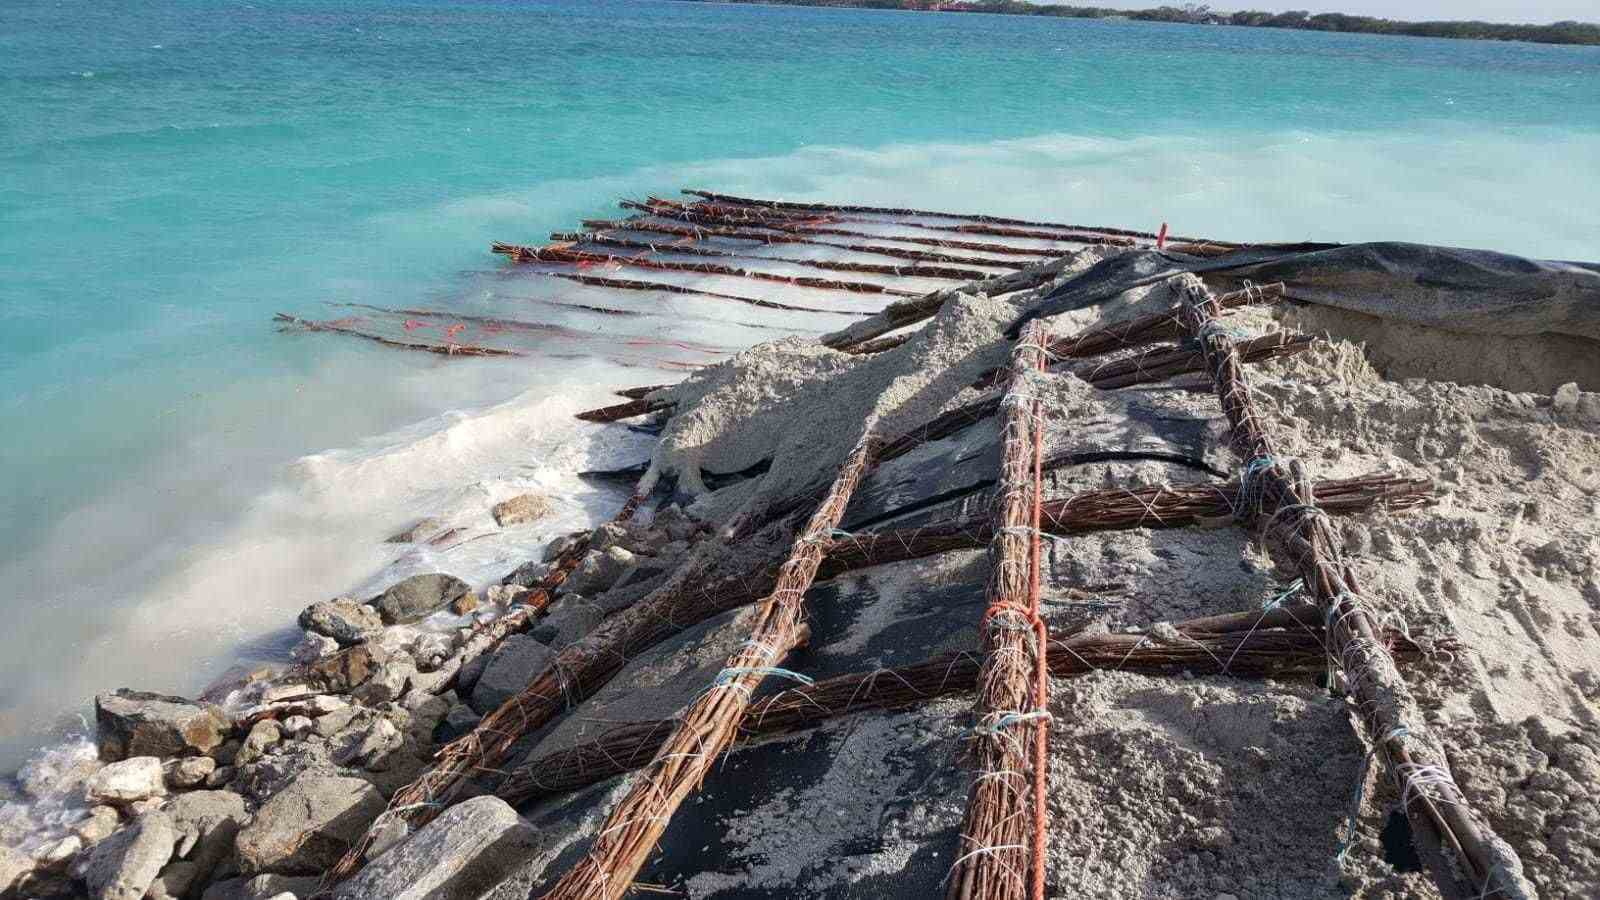 Aruba - This is how coasts can be protected.